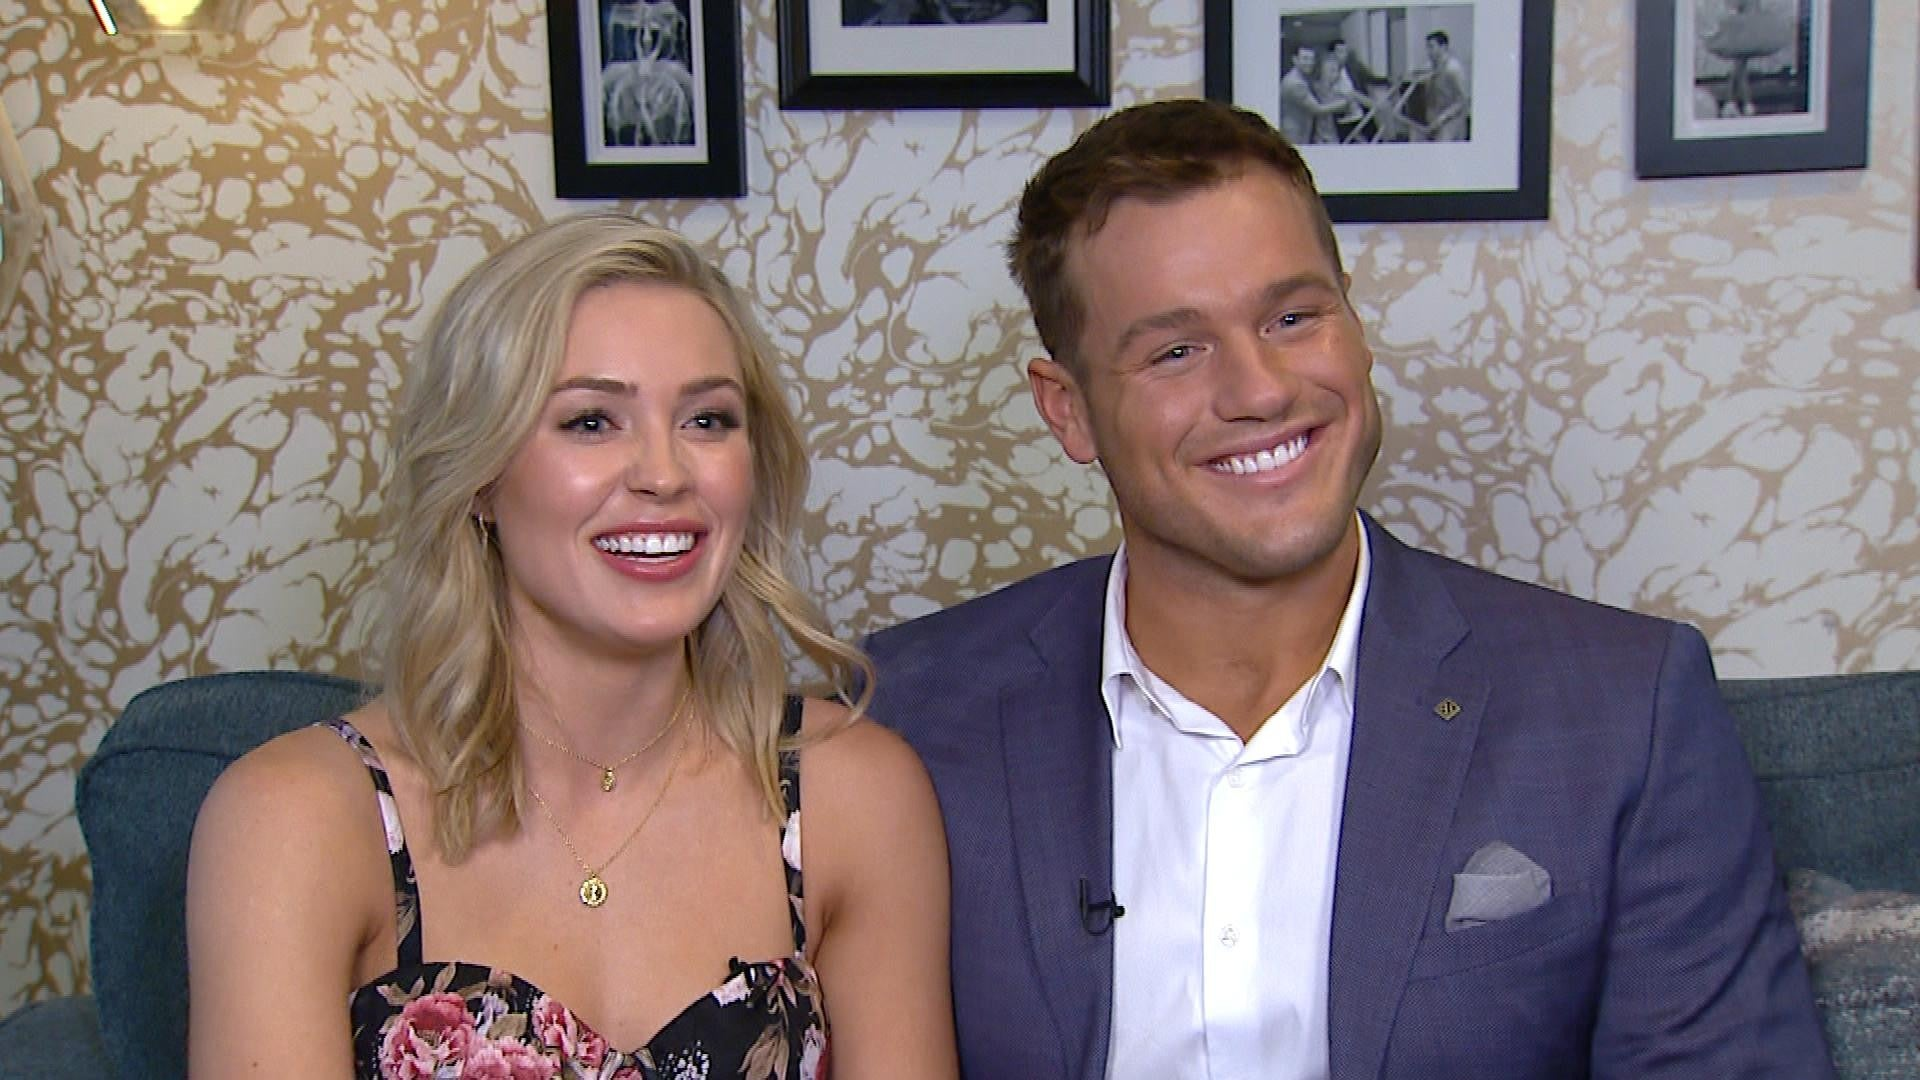 'The Bachelor': Colton Underwood's holiday photo without Cassie Randolph